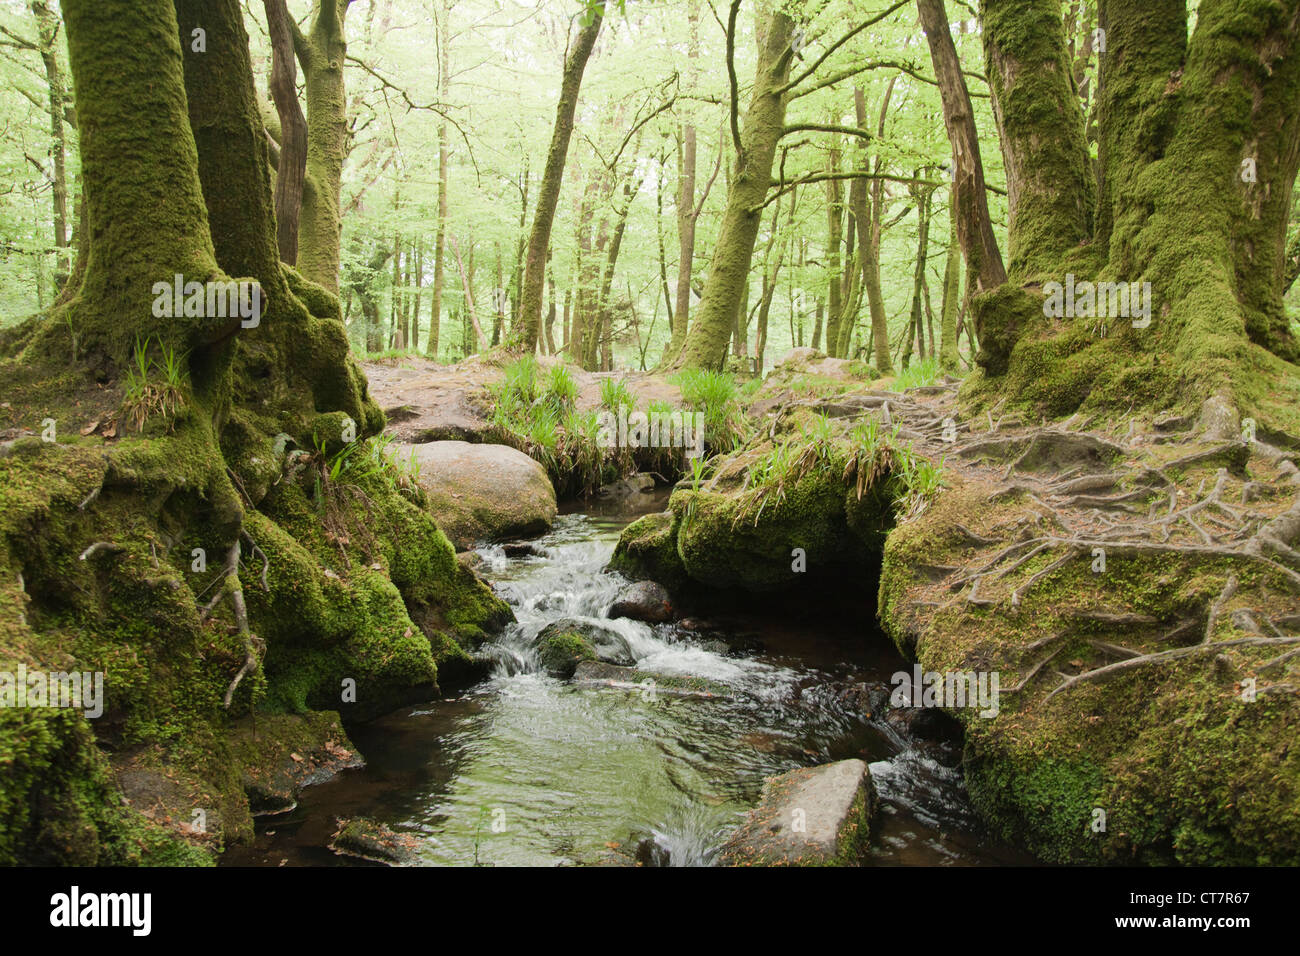 Flowing stream in an English forest, UK. - Stock Image